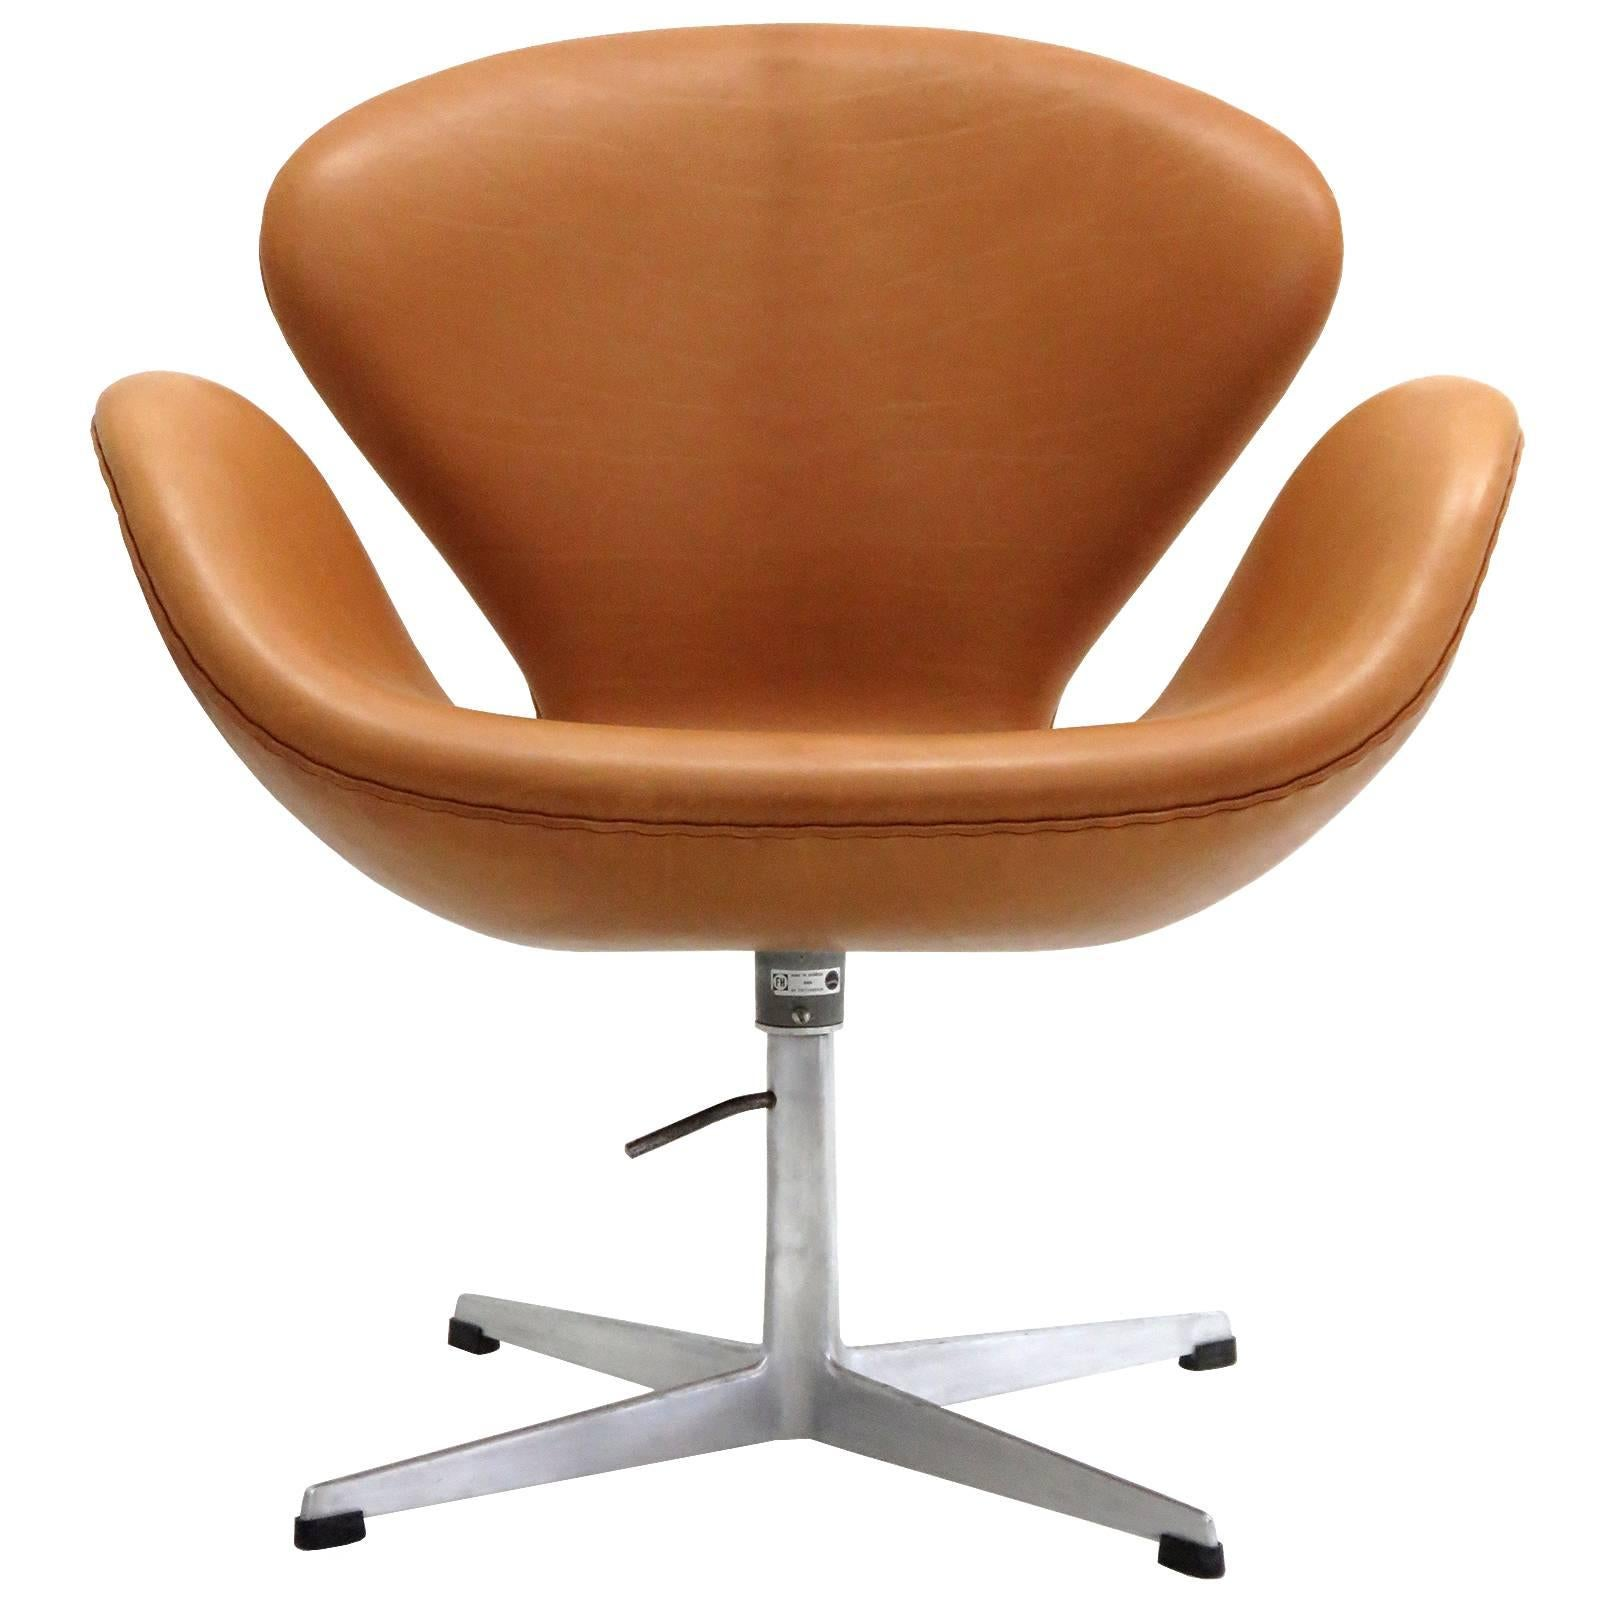 Charmant Arne Jacobsen, Swan Chair, Model 3320